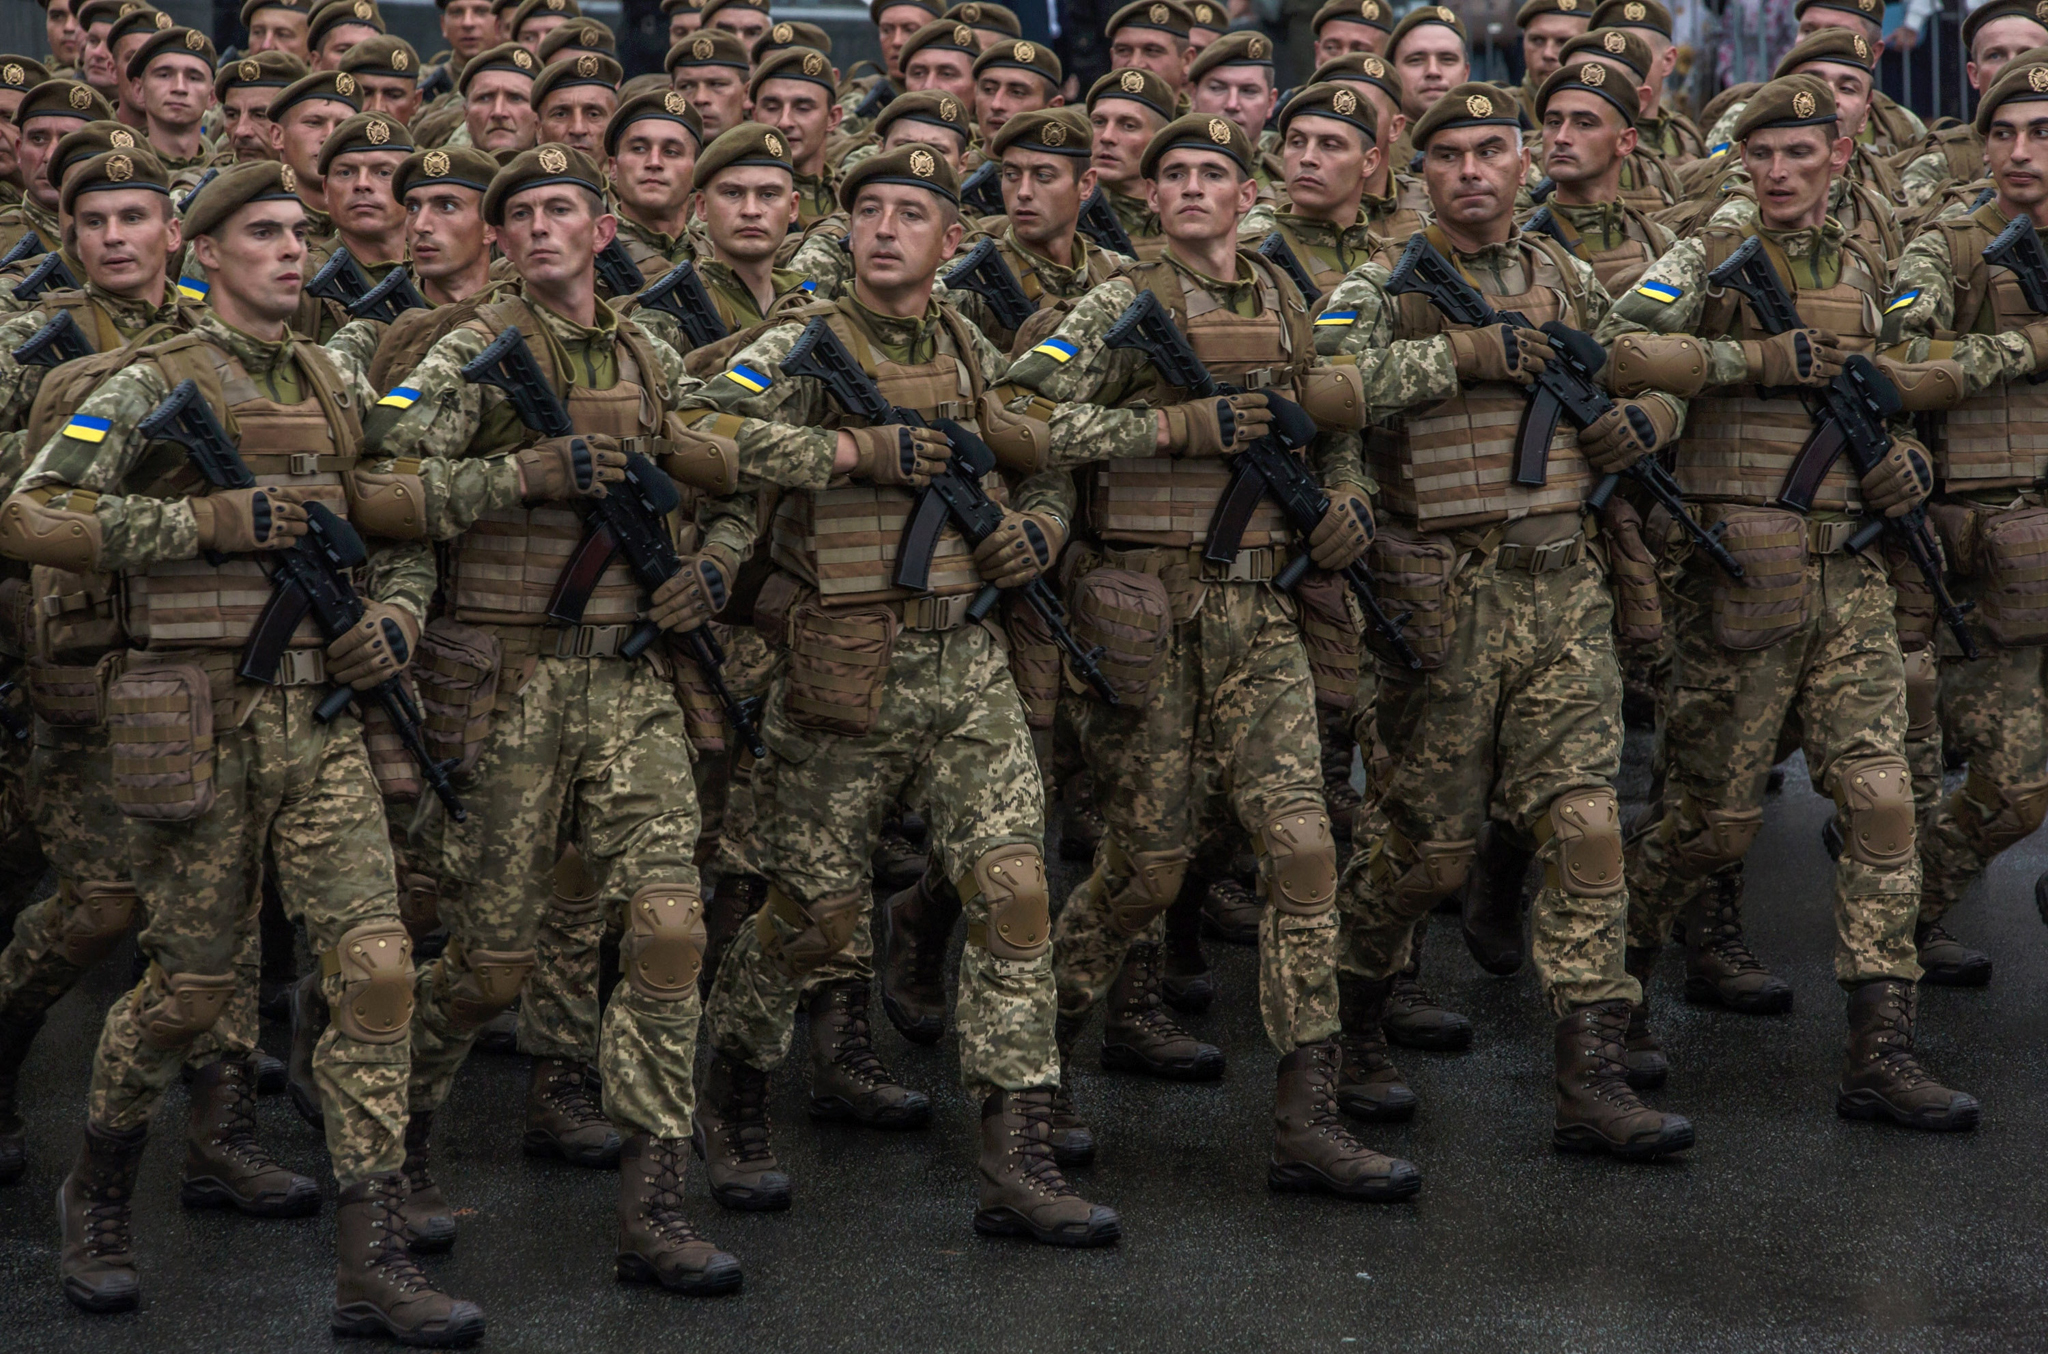 Ukrainian Soldiers rehearse before a military parade held to celebrate the 25th anniversary of Ukraine's independence on August 24, 2016 in Kiev, Ukraine.